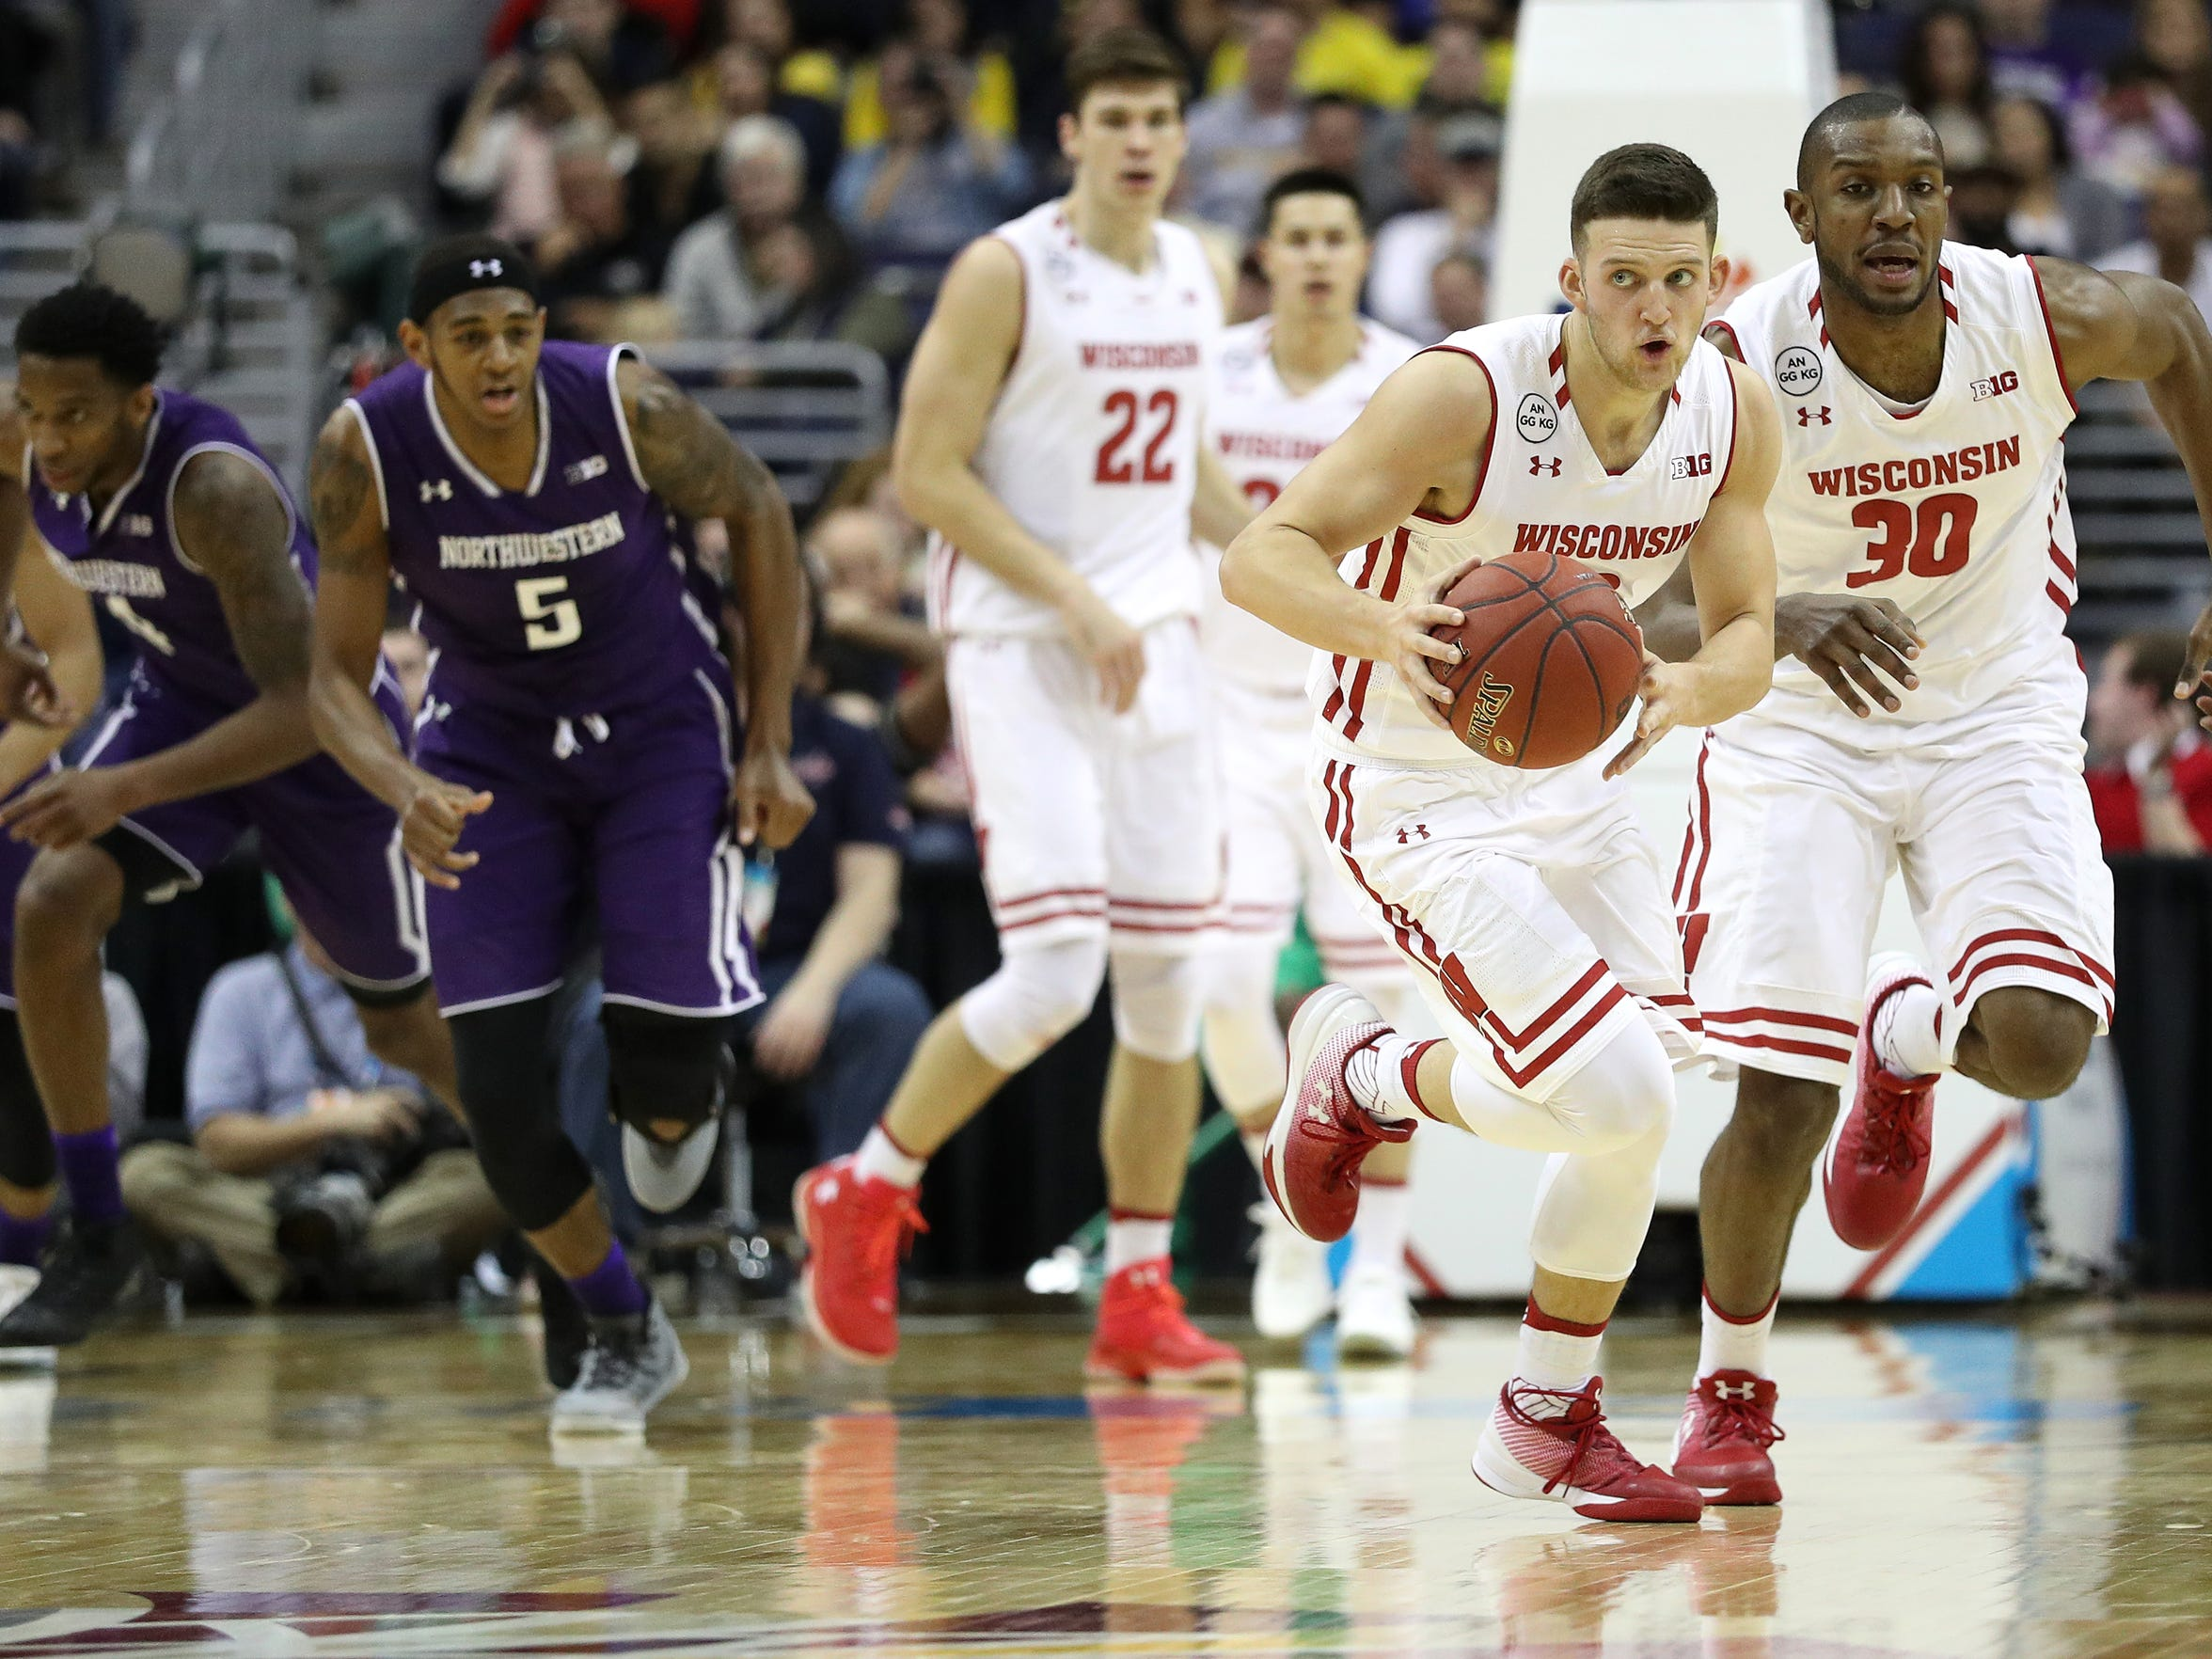 Wisconsin guard Zak Showalter dribbles up the court